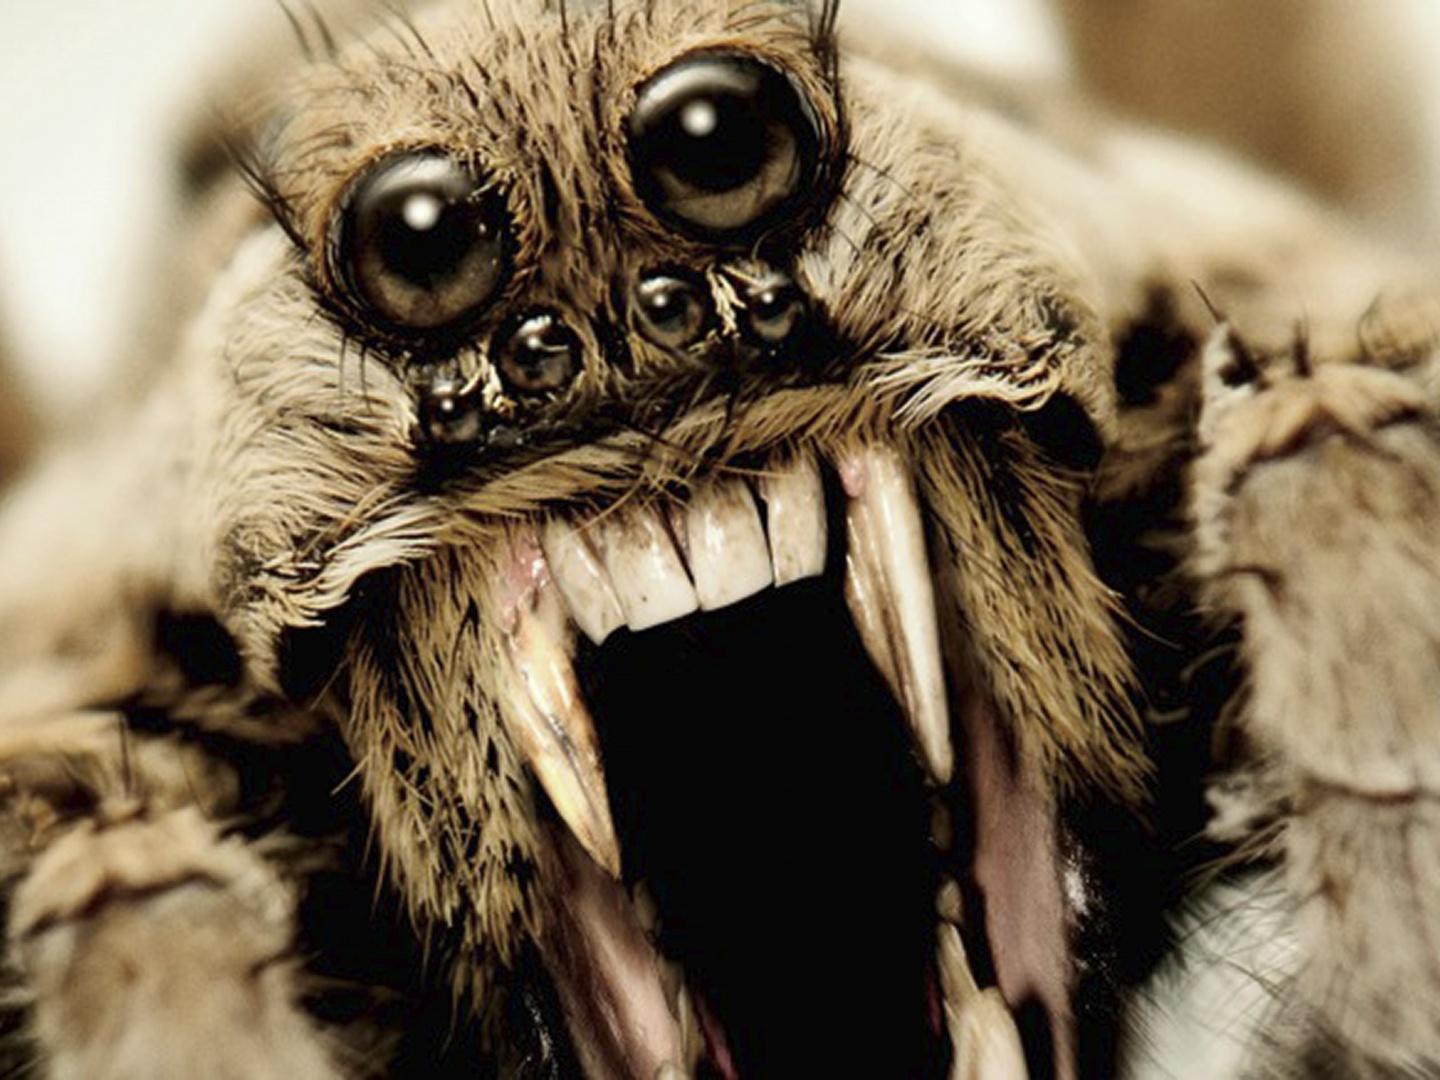 American Horror Story - Roanoke teaser billboard (wolf spider) Thumbnail